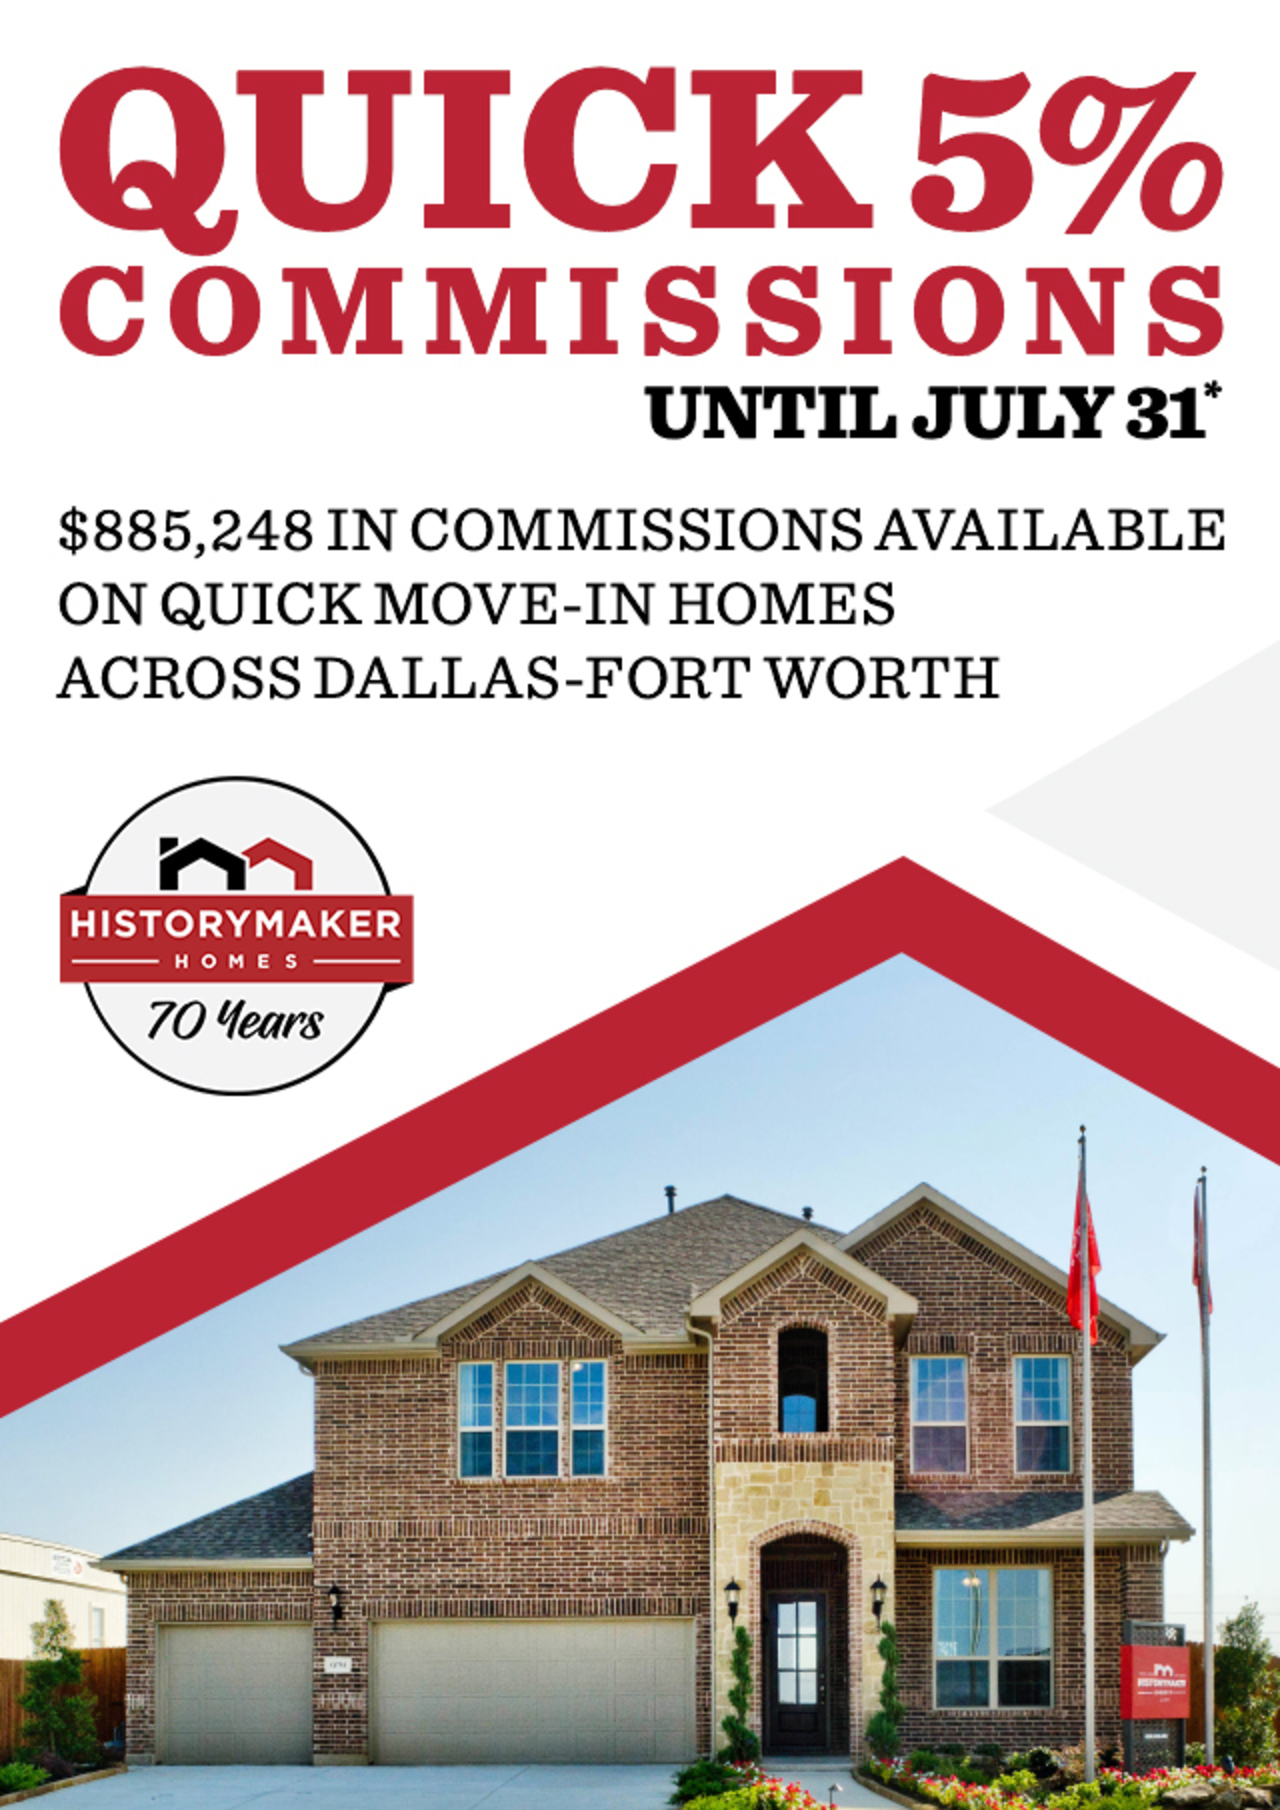 Quick 5% Commissions Until July 31* | $885,248 in Commissions Available on Quick Move-In Homes Across Dallas-Fort Worth | History Maker 70th Anniversary Logo